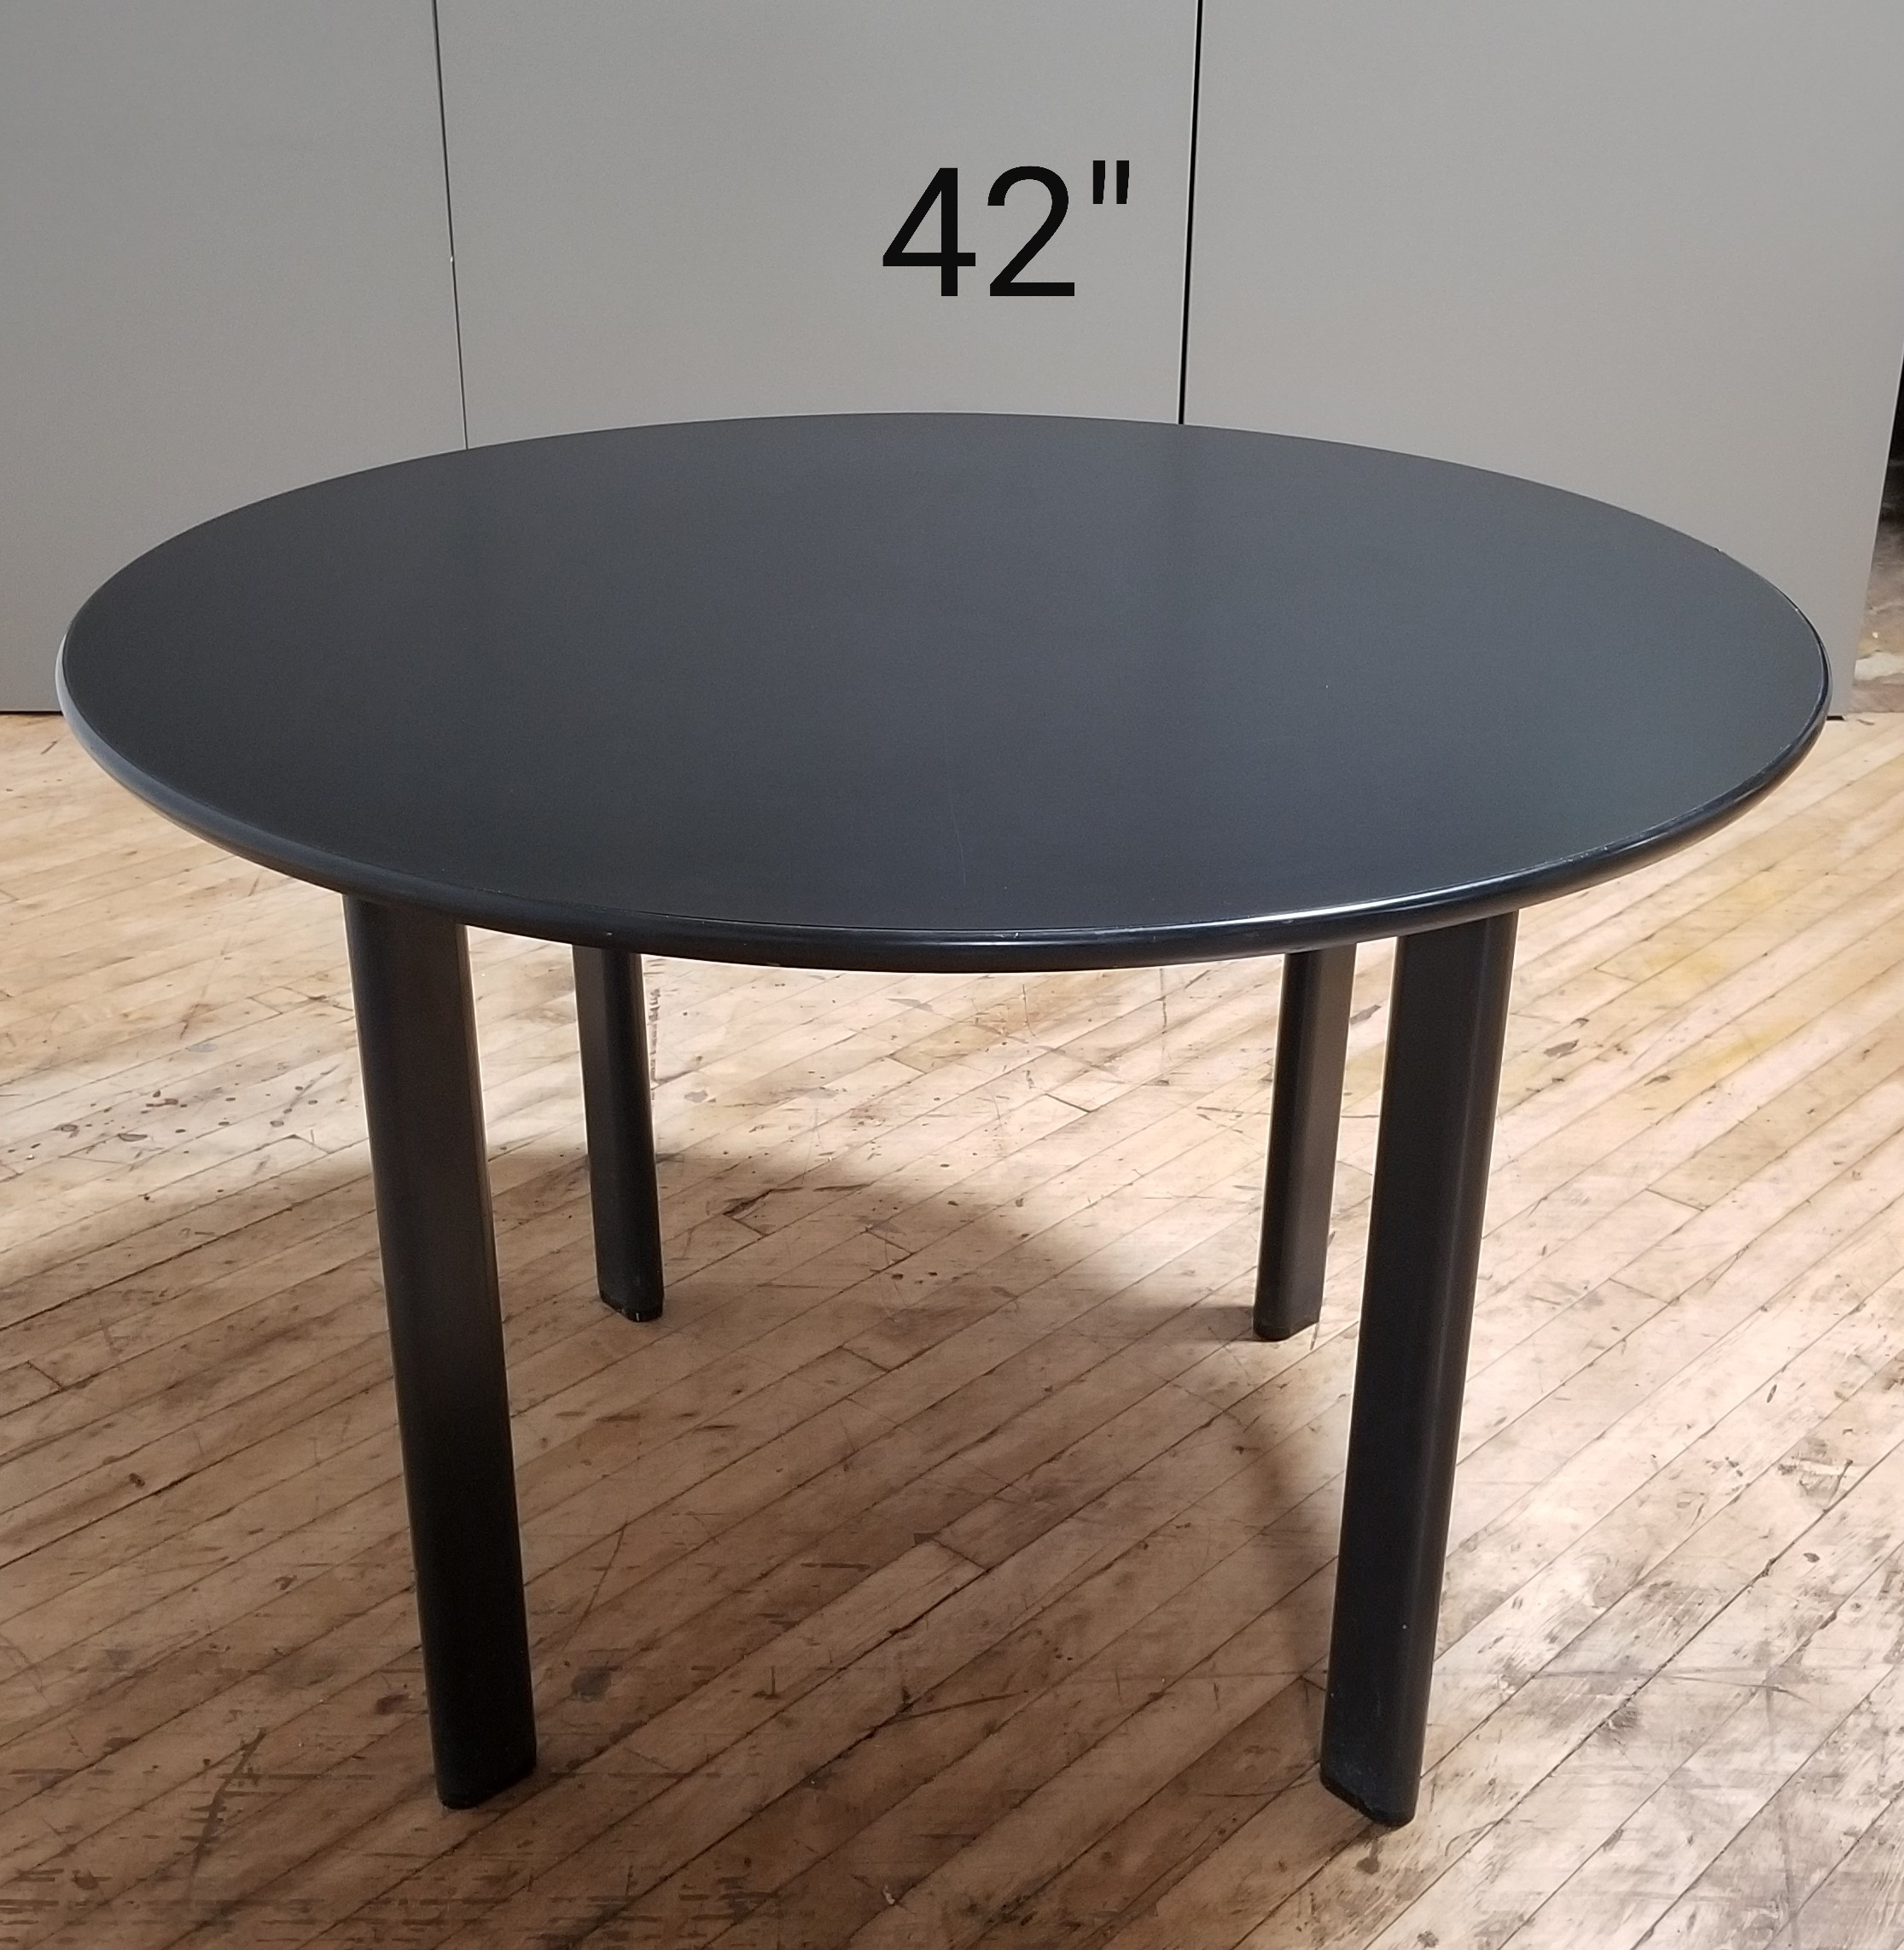 #312. Blk 42in Round Table